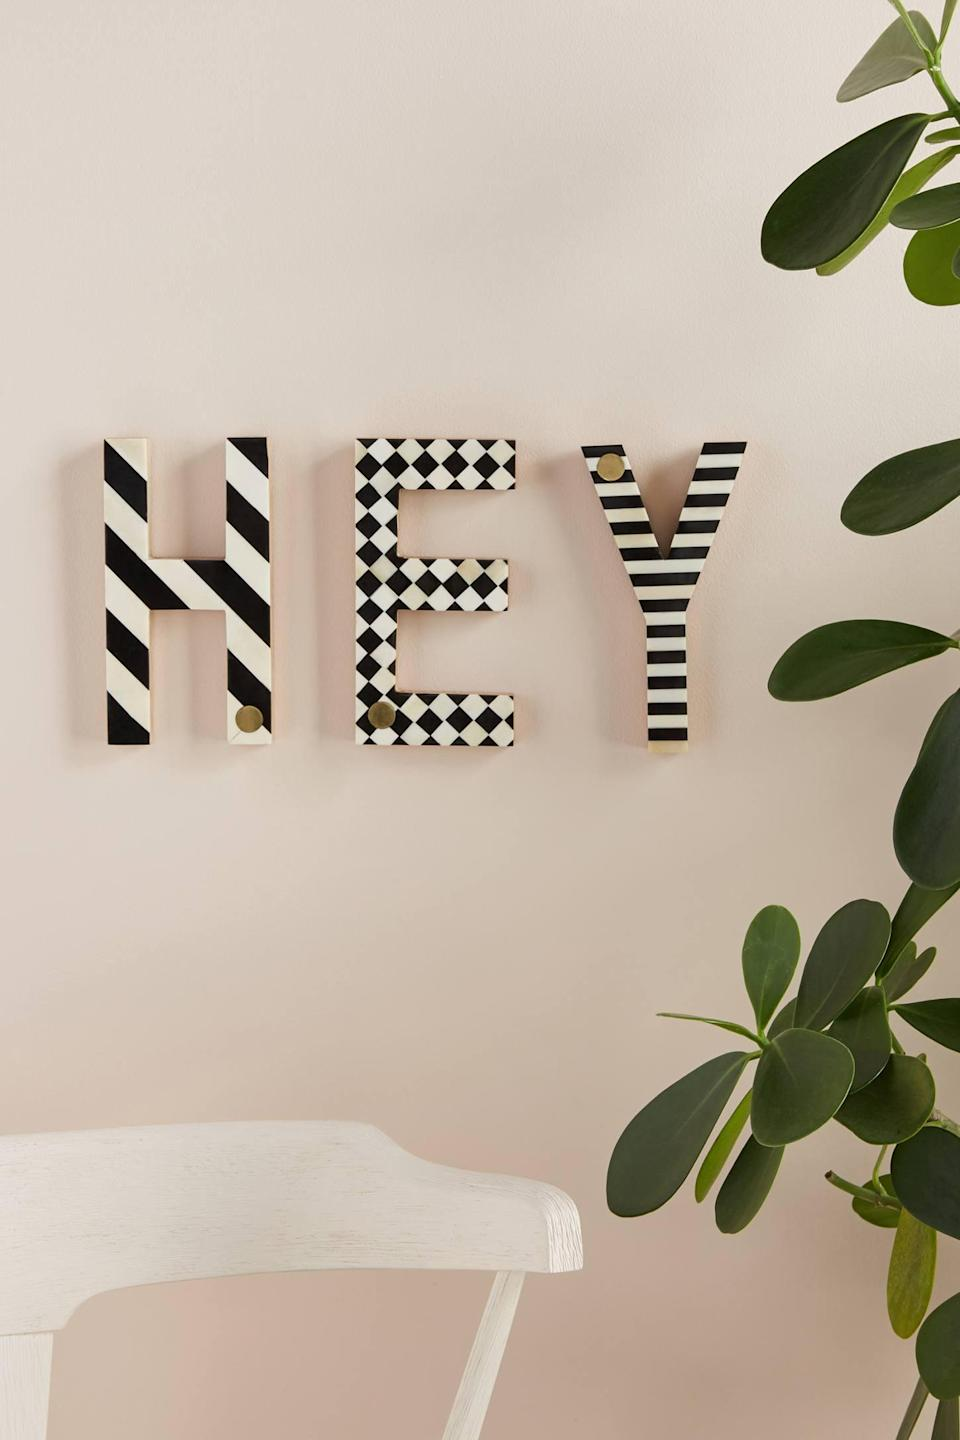 "<p>Make your own inspirational message with a few of these <a href=""https://www.popsugar.com/buy/Darcy-Monogram-Letters-562170?p_name=Darcy%20Monogram%20Letters&retailer=anthropologie.com&pid=562170&price=24&evar1=casa%3Aus&evar9=47360872&evar98=https%3A%2F%2Fwww.popsugar.com%2Fhome%2Fphoto-gallery%2F47360872%2Fimage%2F47361108%2FDarcy-Monogram-Letter&list1=shopping%2Chome%20decor%2Cdecor%20shopping%2Chome%20shopping&prop13=api&pdata=1"" rel=""nofollow noopener"" class=""link rapid-noclick-resp"" target=""_blank"" data-ylk=""slk:Darcy Monogram Letters"">Darcy Monogram Letters</a> ($24).</p>"